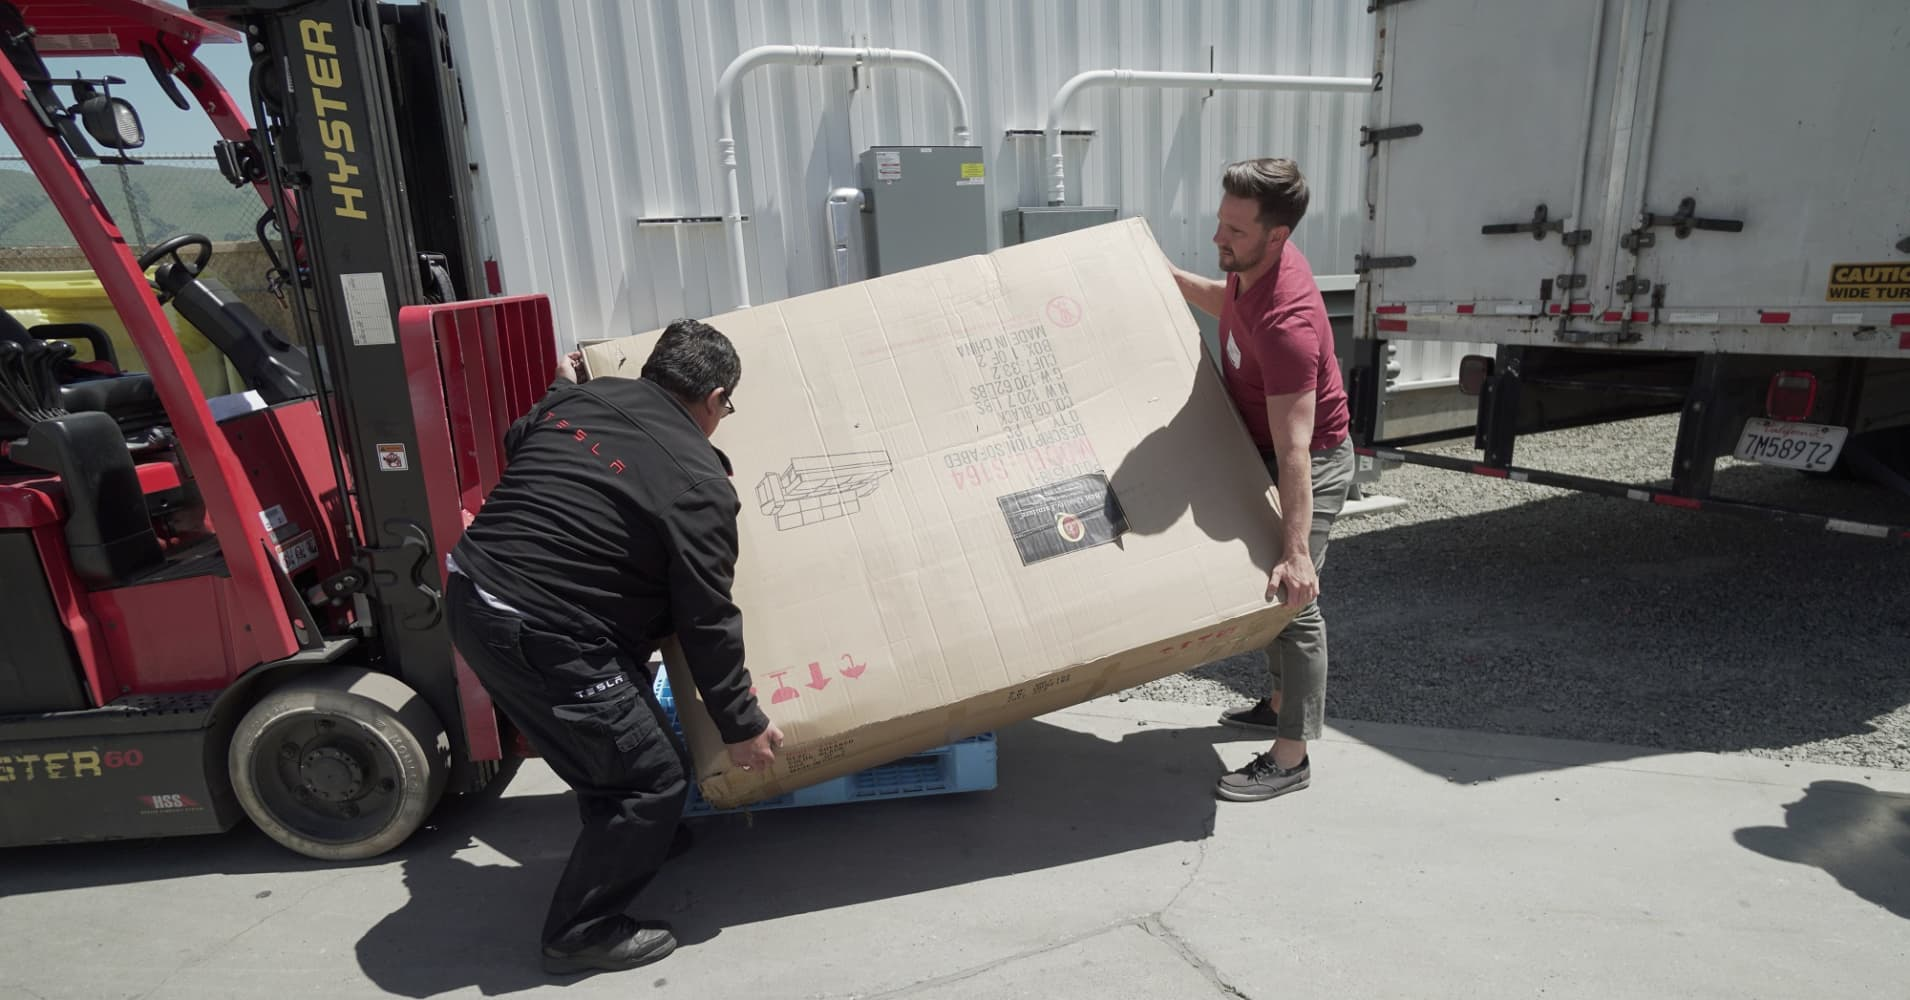 YouTuber Ben Sullins (right) delivers a brand new couch to the Tesla factory in Fremont, California on May 1, 2018.